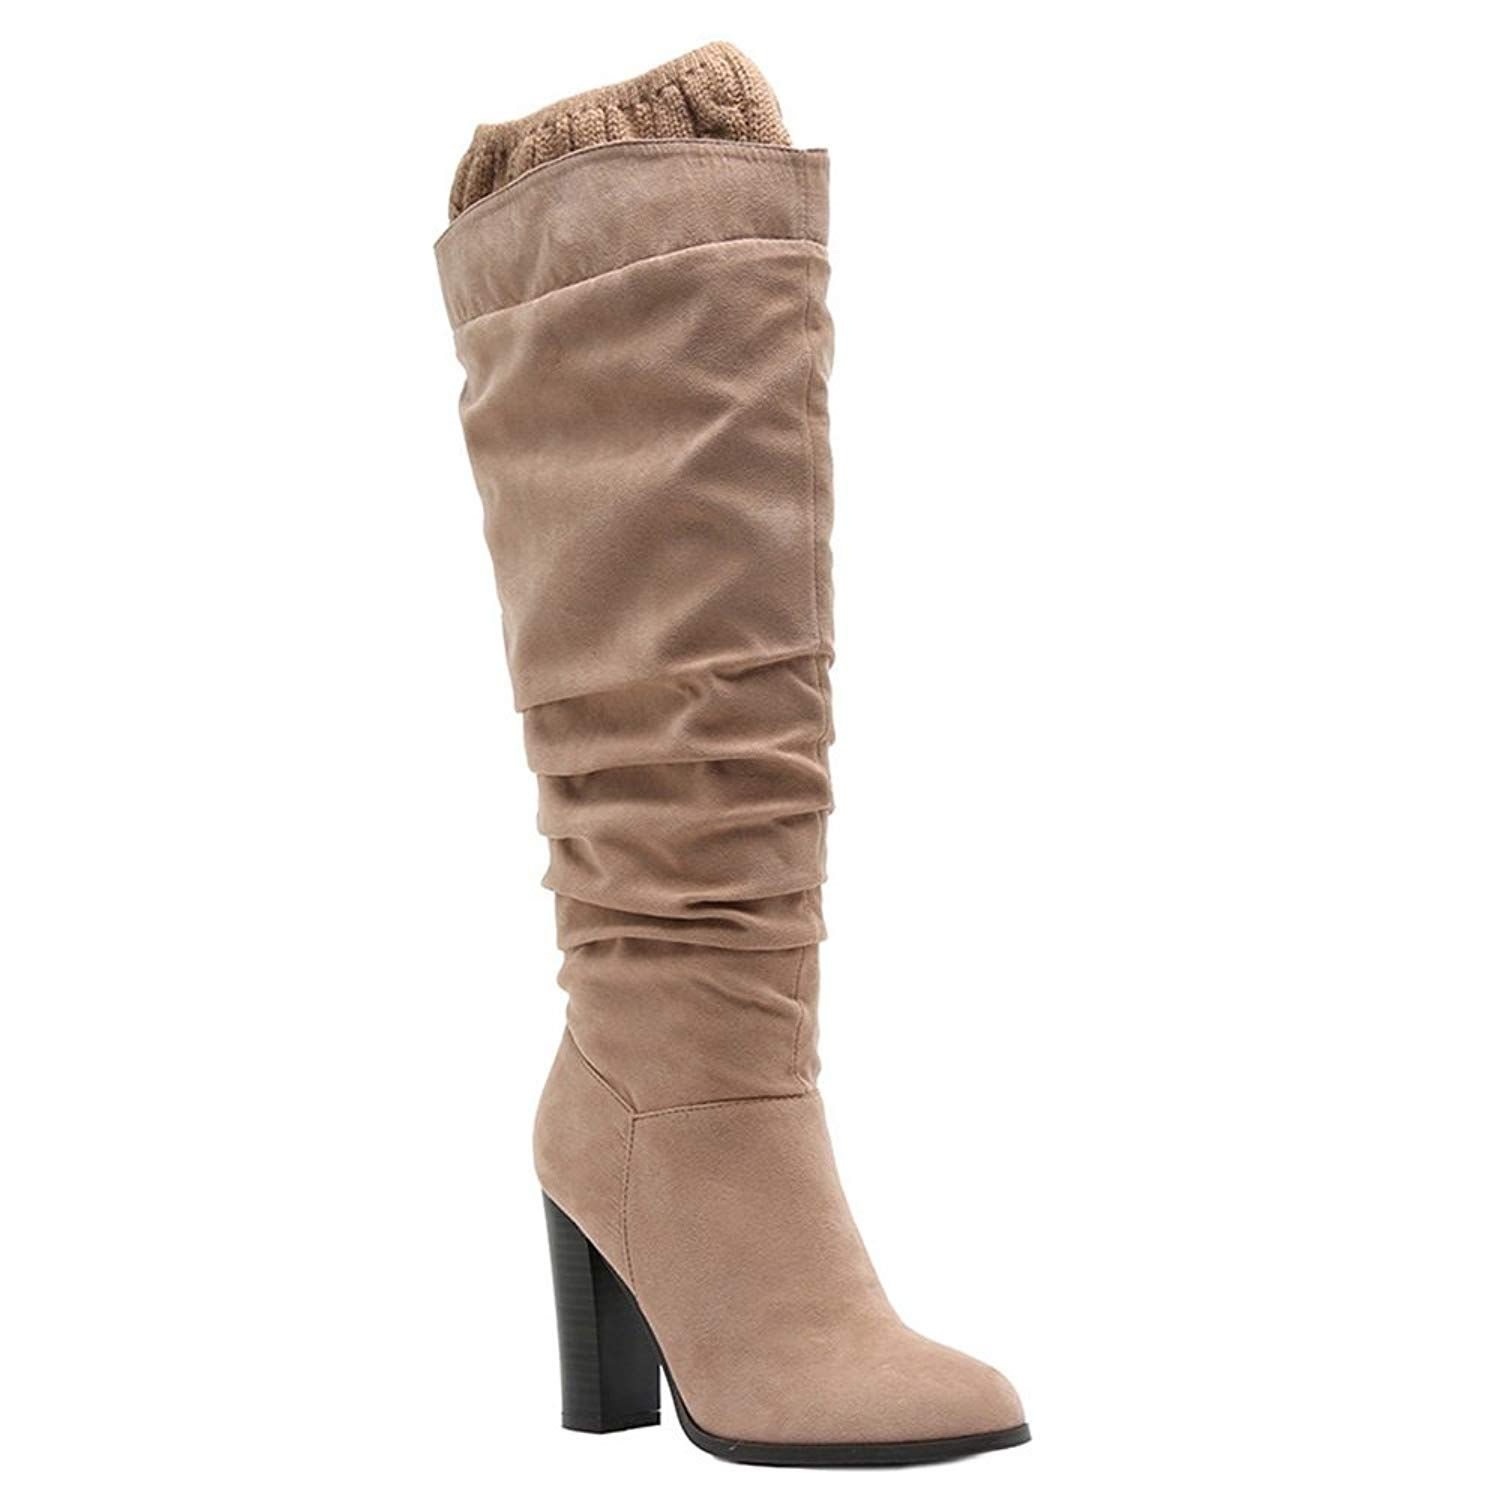 5ca4de1ee936 QUPID FE54 Women s Slouchy Knee High Sweater Cuff High Block Heel Boots     To view further for this item